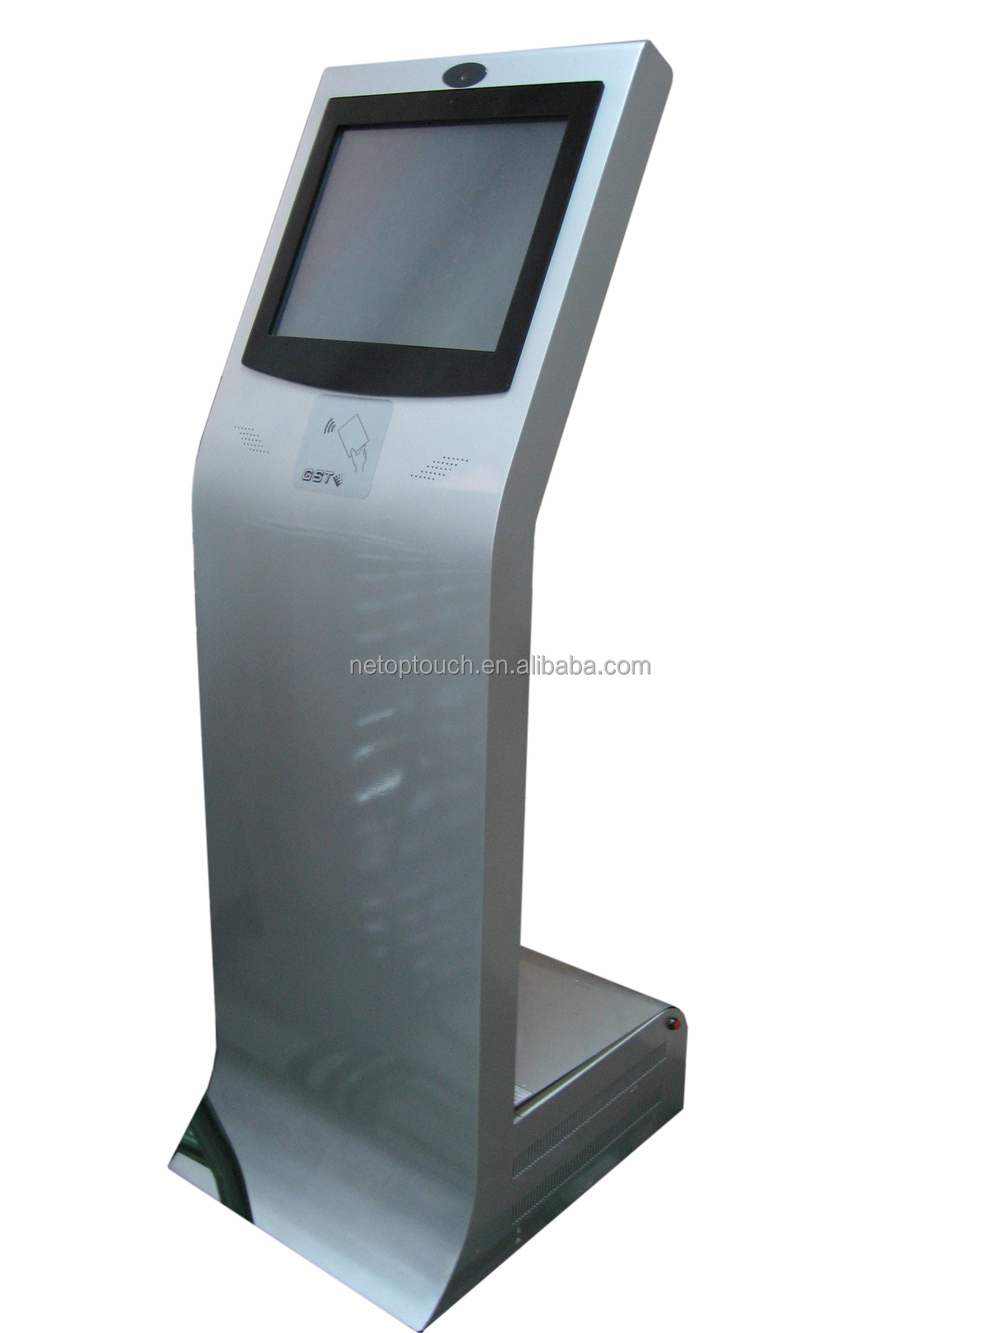 LCD monitor touchscreen kiosk for hotel